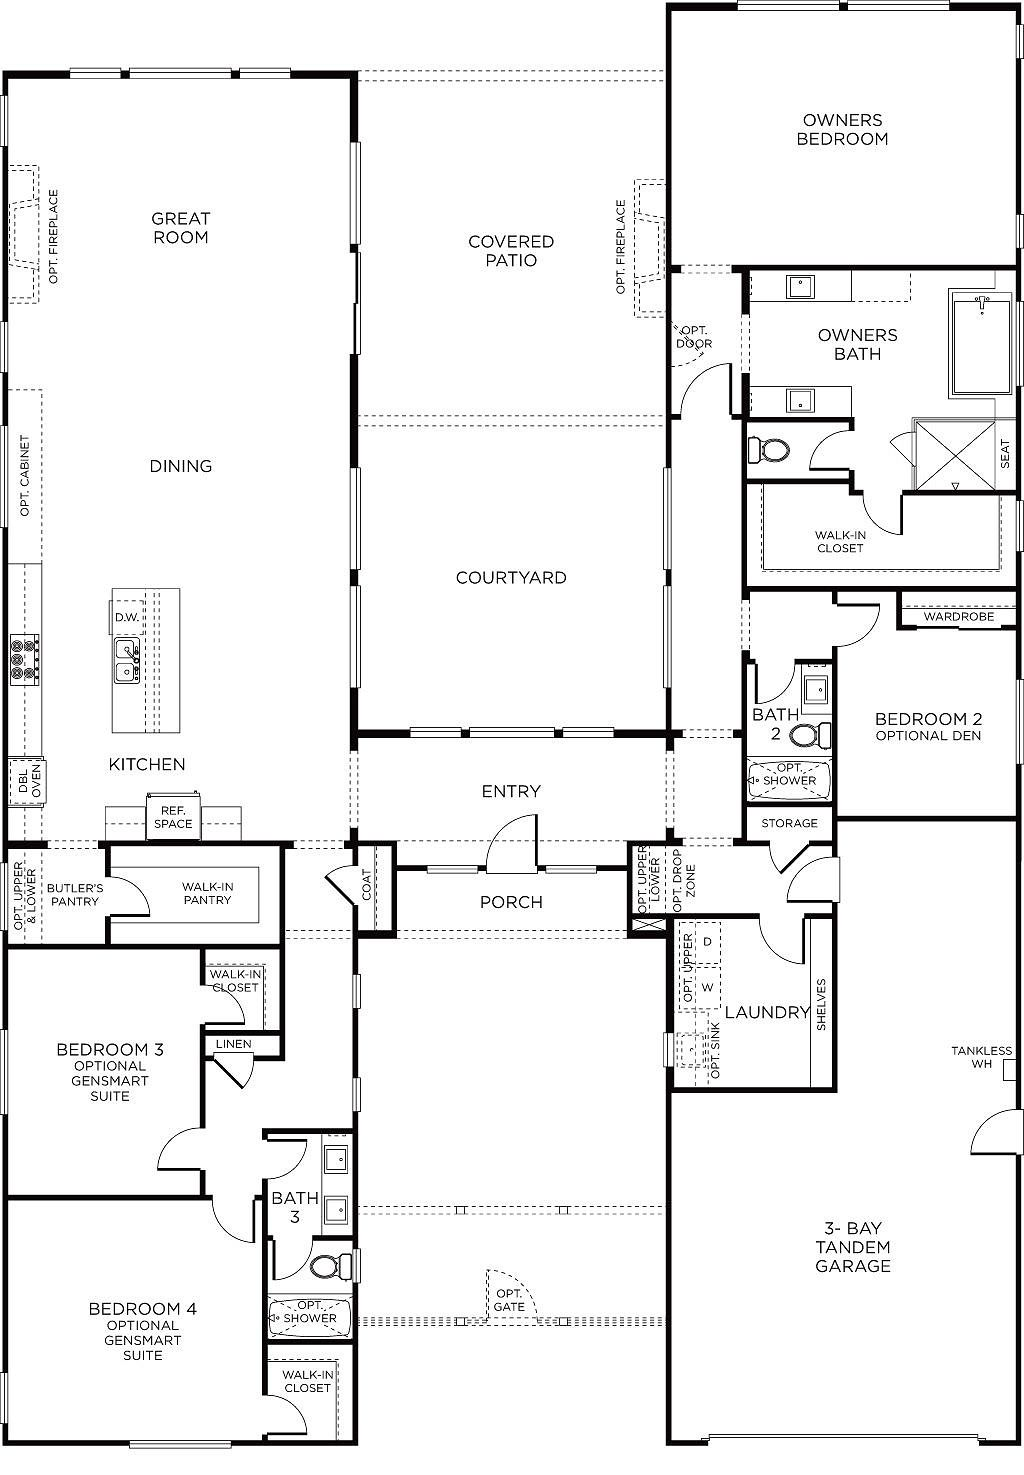 Tandem Garage House Plans Beacon Plan 1 Floorplan Inland Empire Pardee Homes In 2019